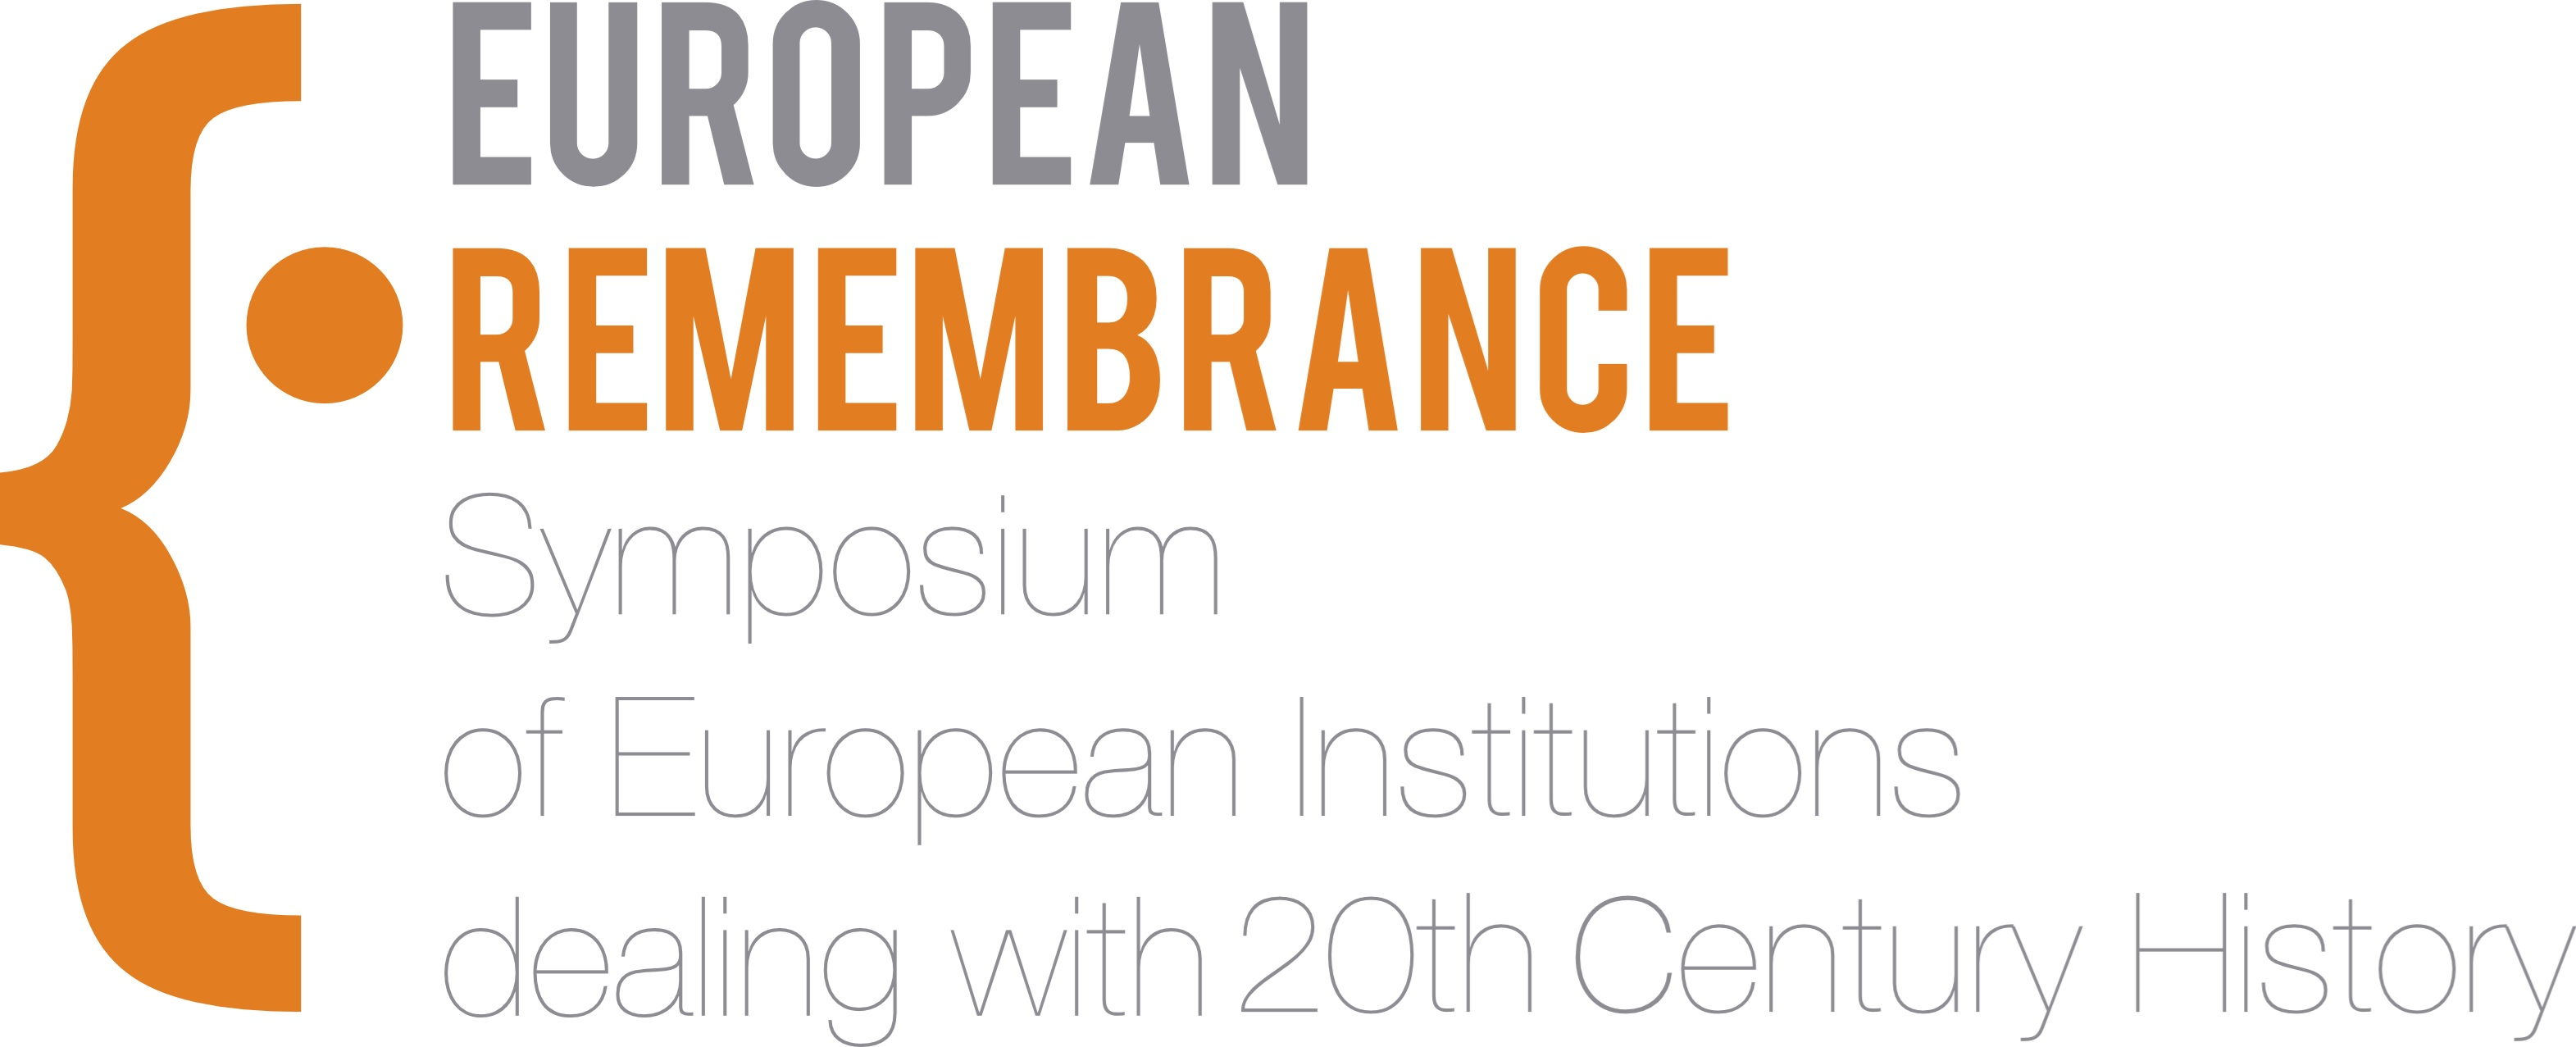 European Remembrance Symposium in Berlin